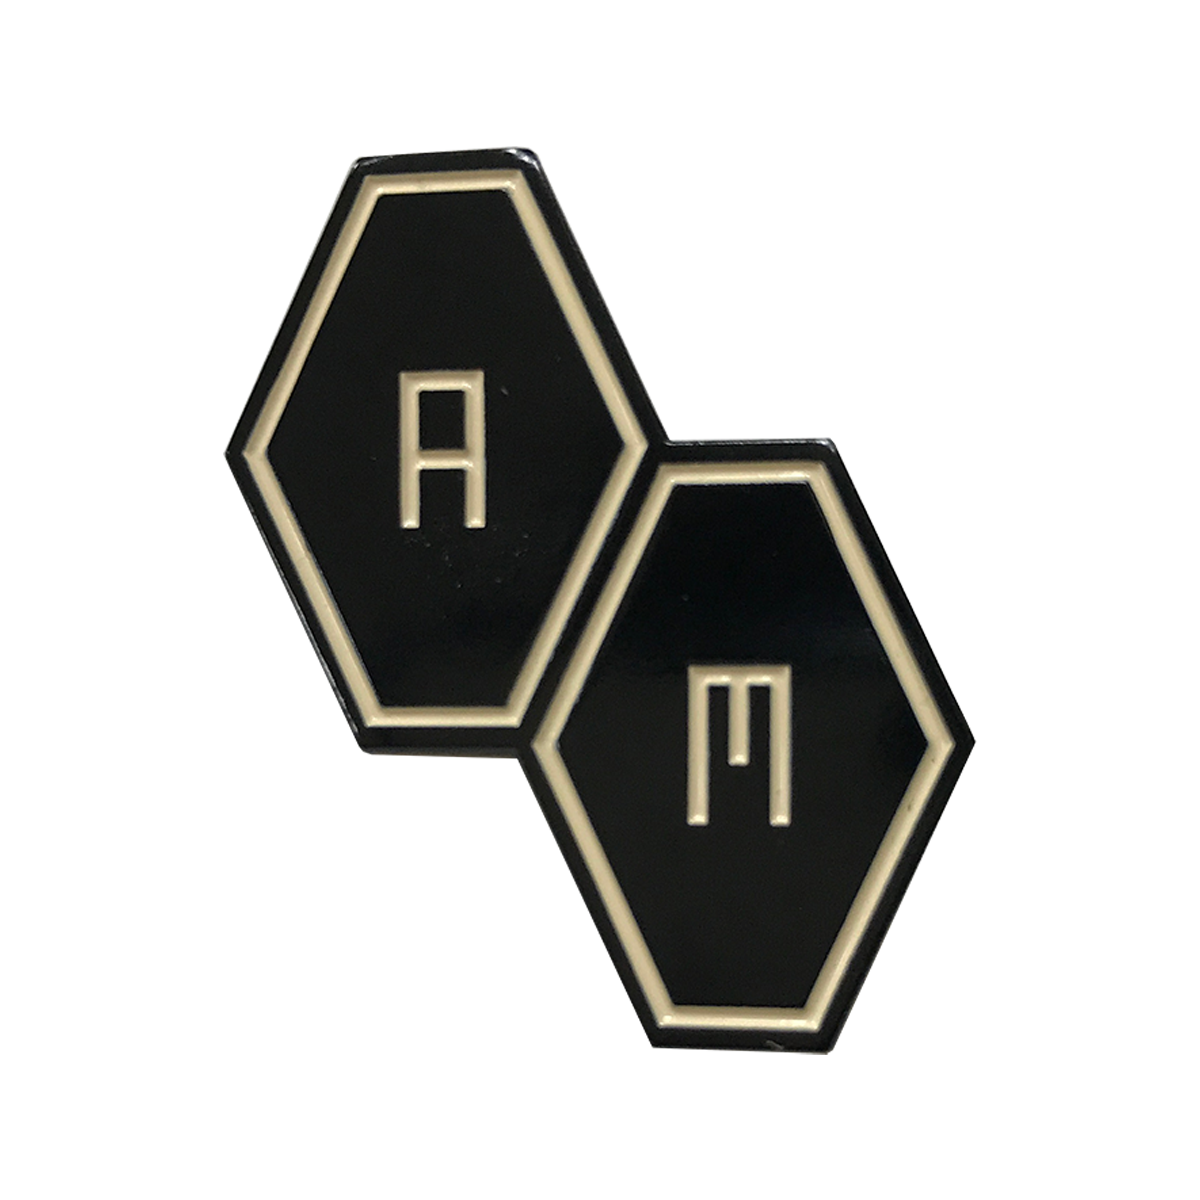 'AM HEXAGON' PIN BADGE